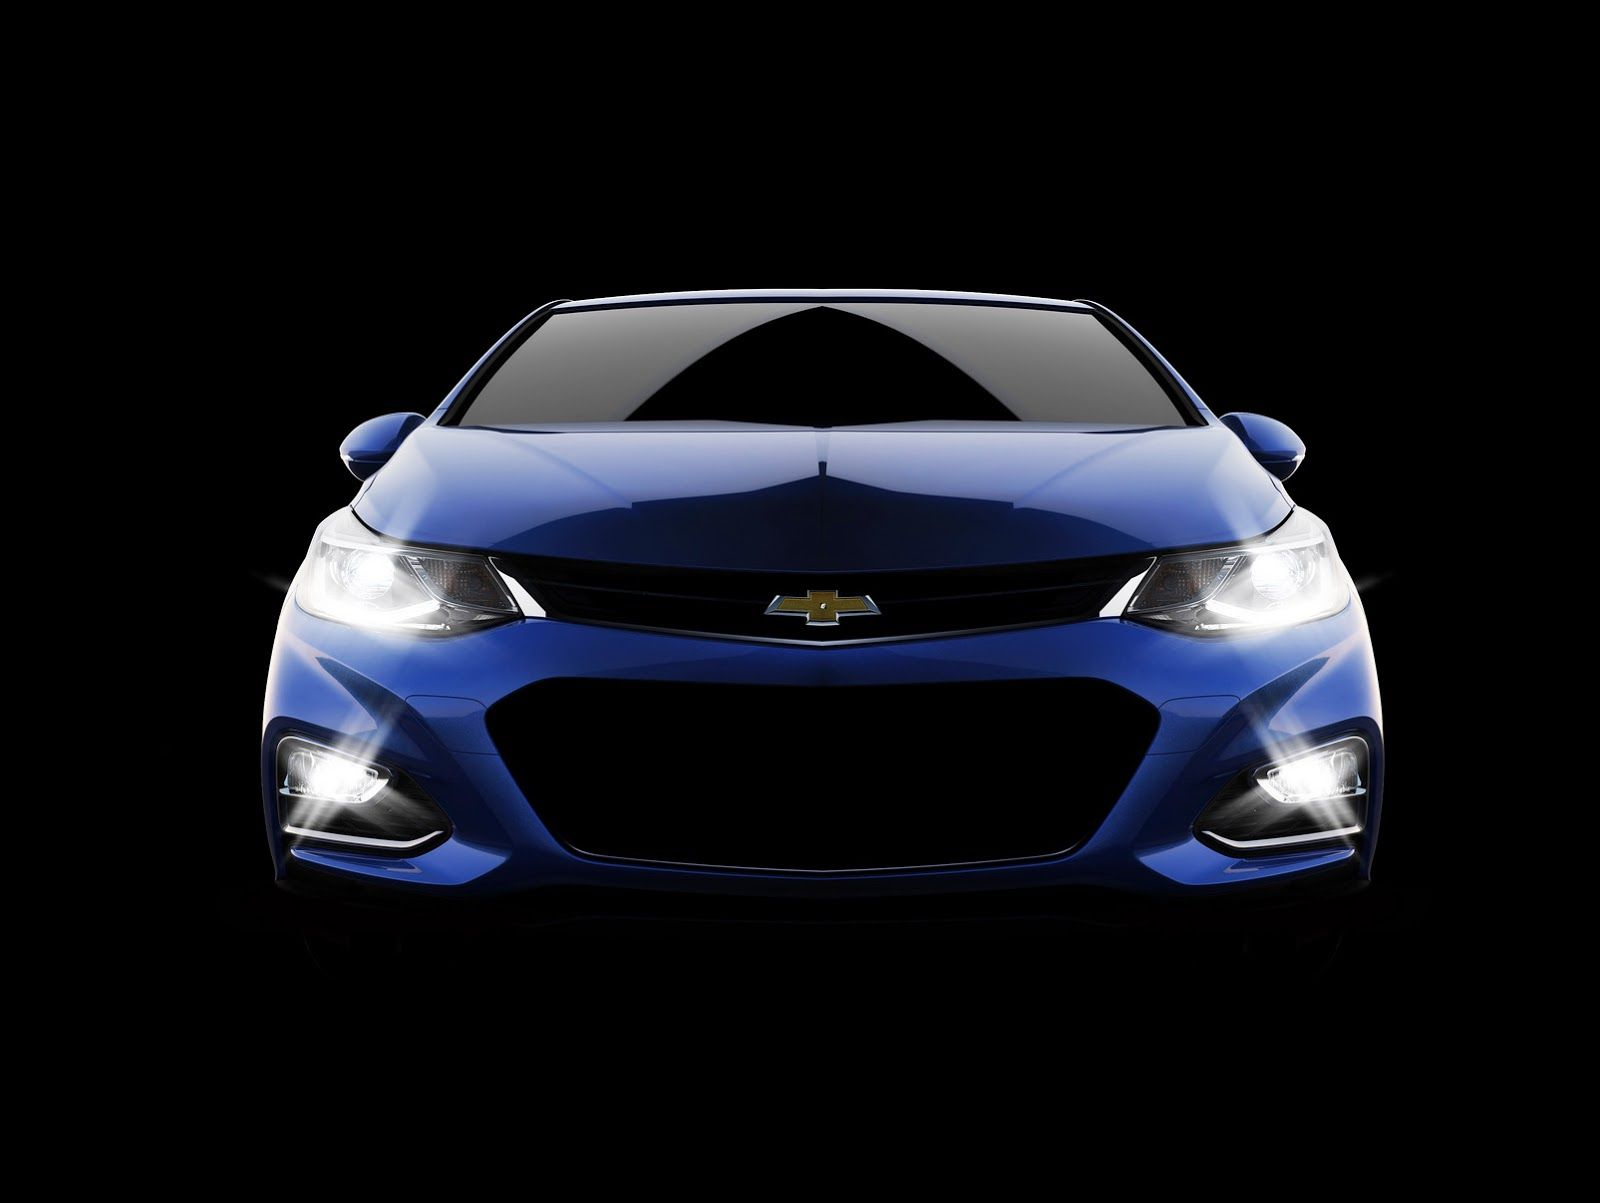 2018 Chevy Cruze Review and Price - http://www.uscarsnews.com/2018 ...